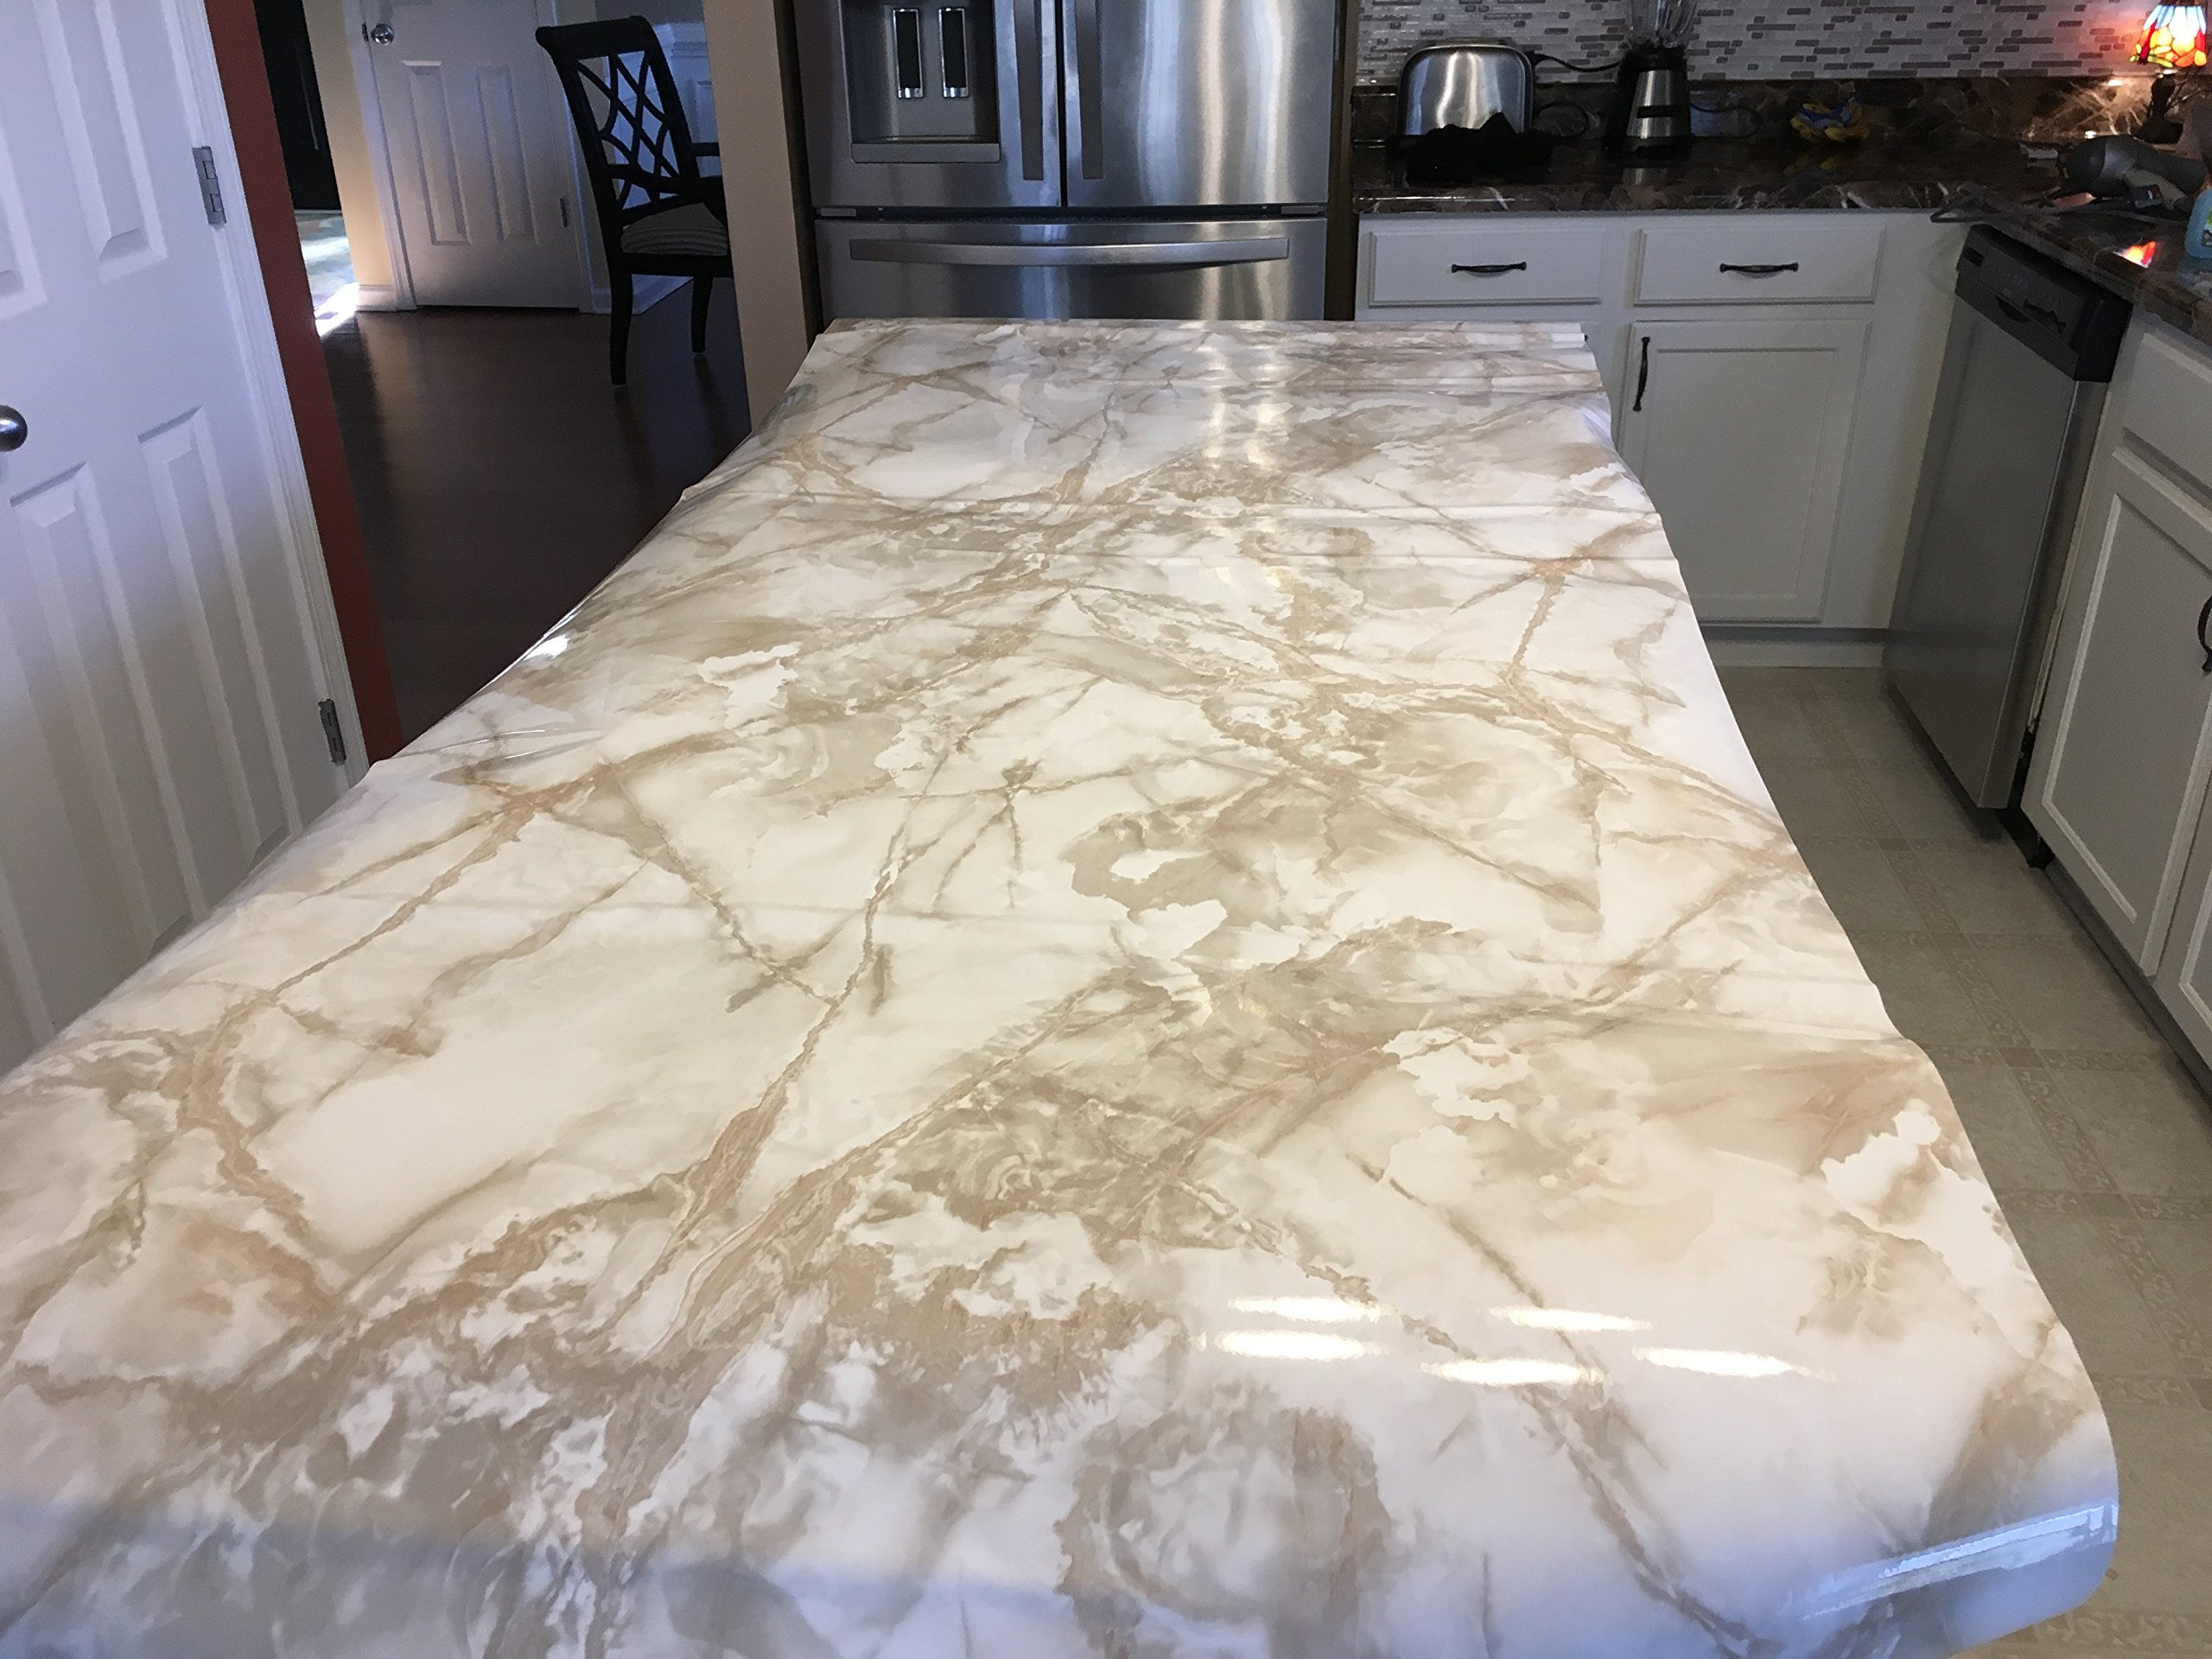 EZ FAUX DECOR 36'' W x 240'' L Decorative Peel and Stick White Riviera Creme Brulee Faux Marble Self Adhesive Counter Top Vinyl Film Update NOT Grandma's Contact Paper by EZ FAUX DECOR (Image #7)